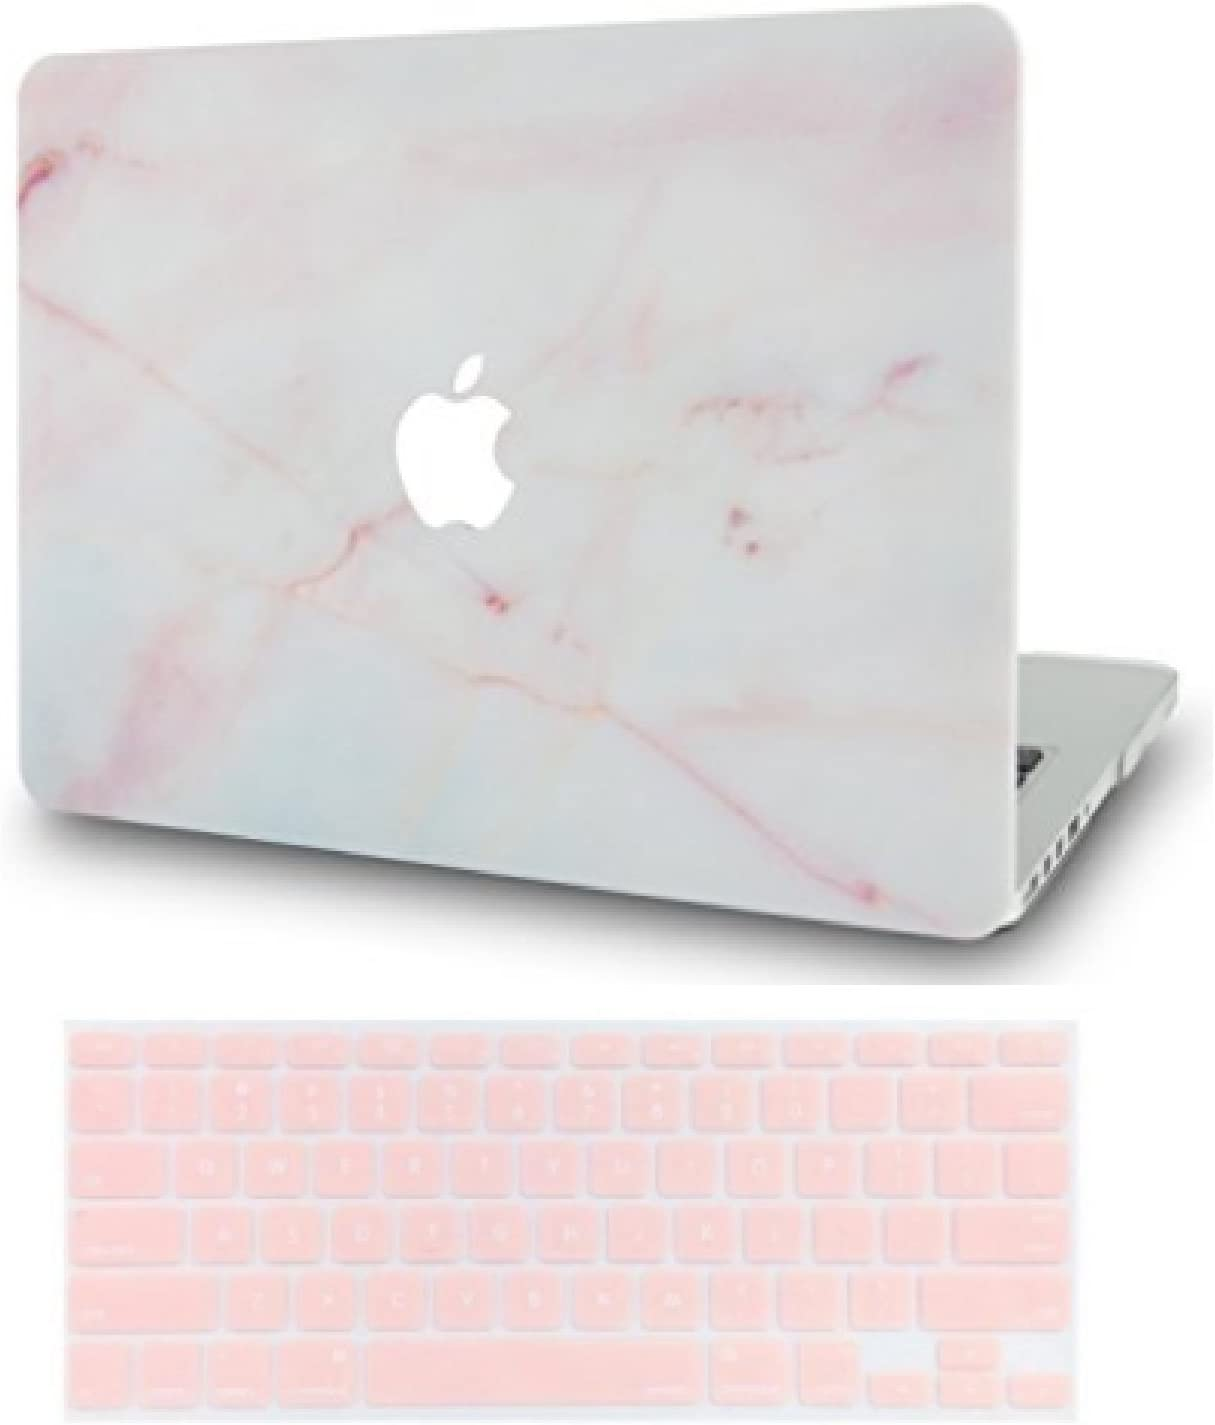 LuvCase 2 in 1 Laptop Case for MacBook Air 13 Inch A1466/A1369 (No Touch ID)(2010-2017) Rubberized Plastic Hard Shell Cover & Keyboard Cover (Pink Marble)